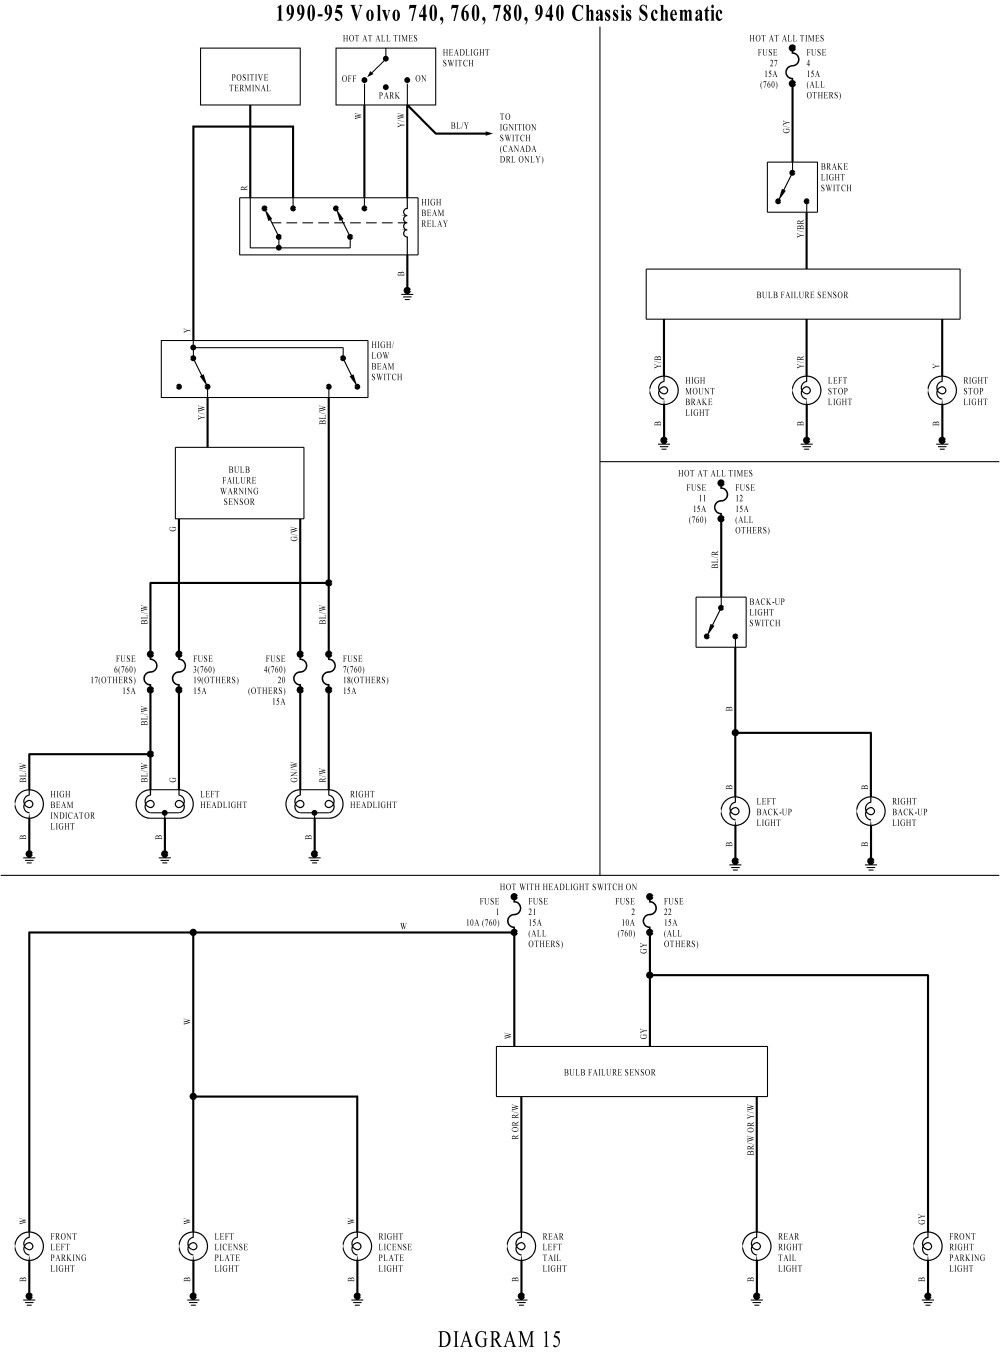 volvo 240 wiring diagram | volvo 240 - volvo 240, volvo en ... volvo ignition wiring diagram